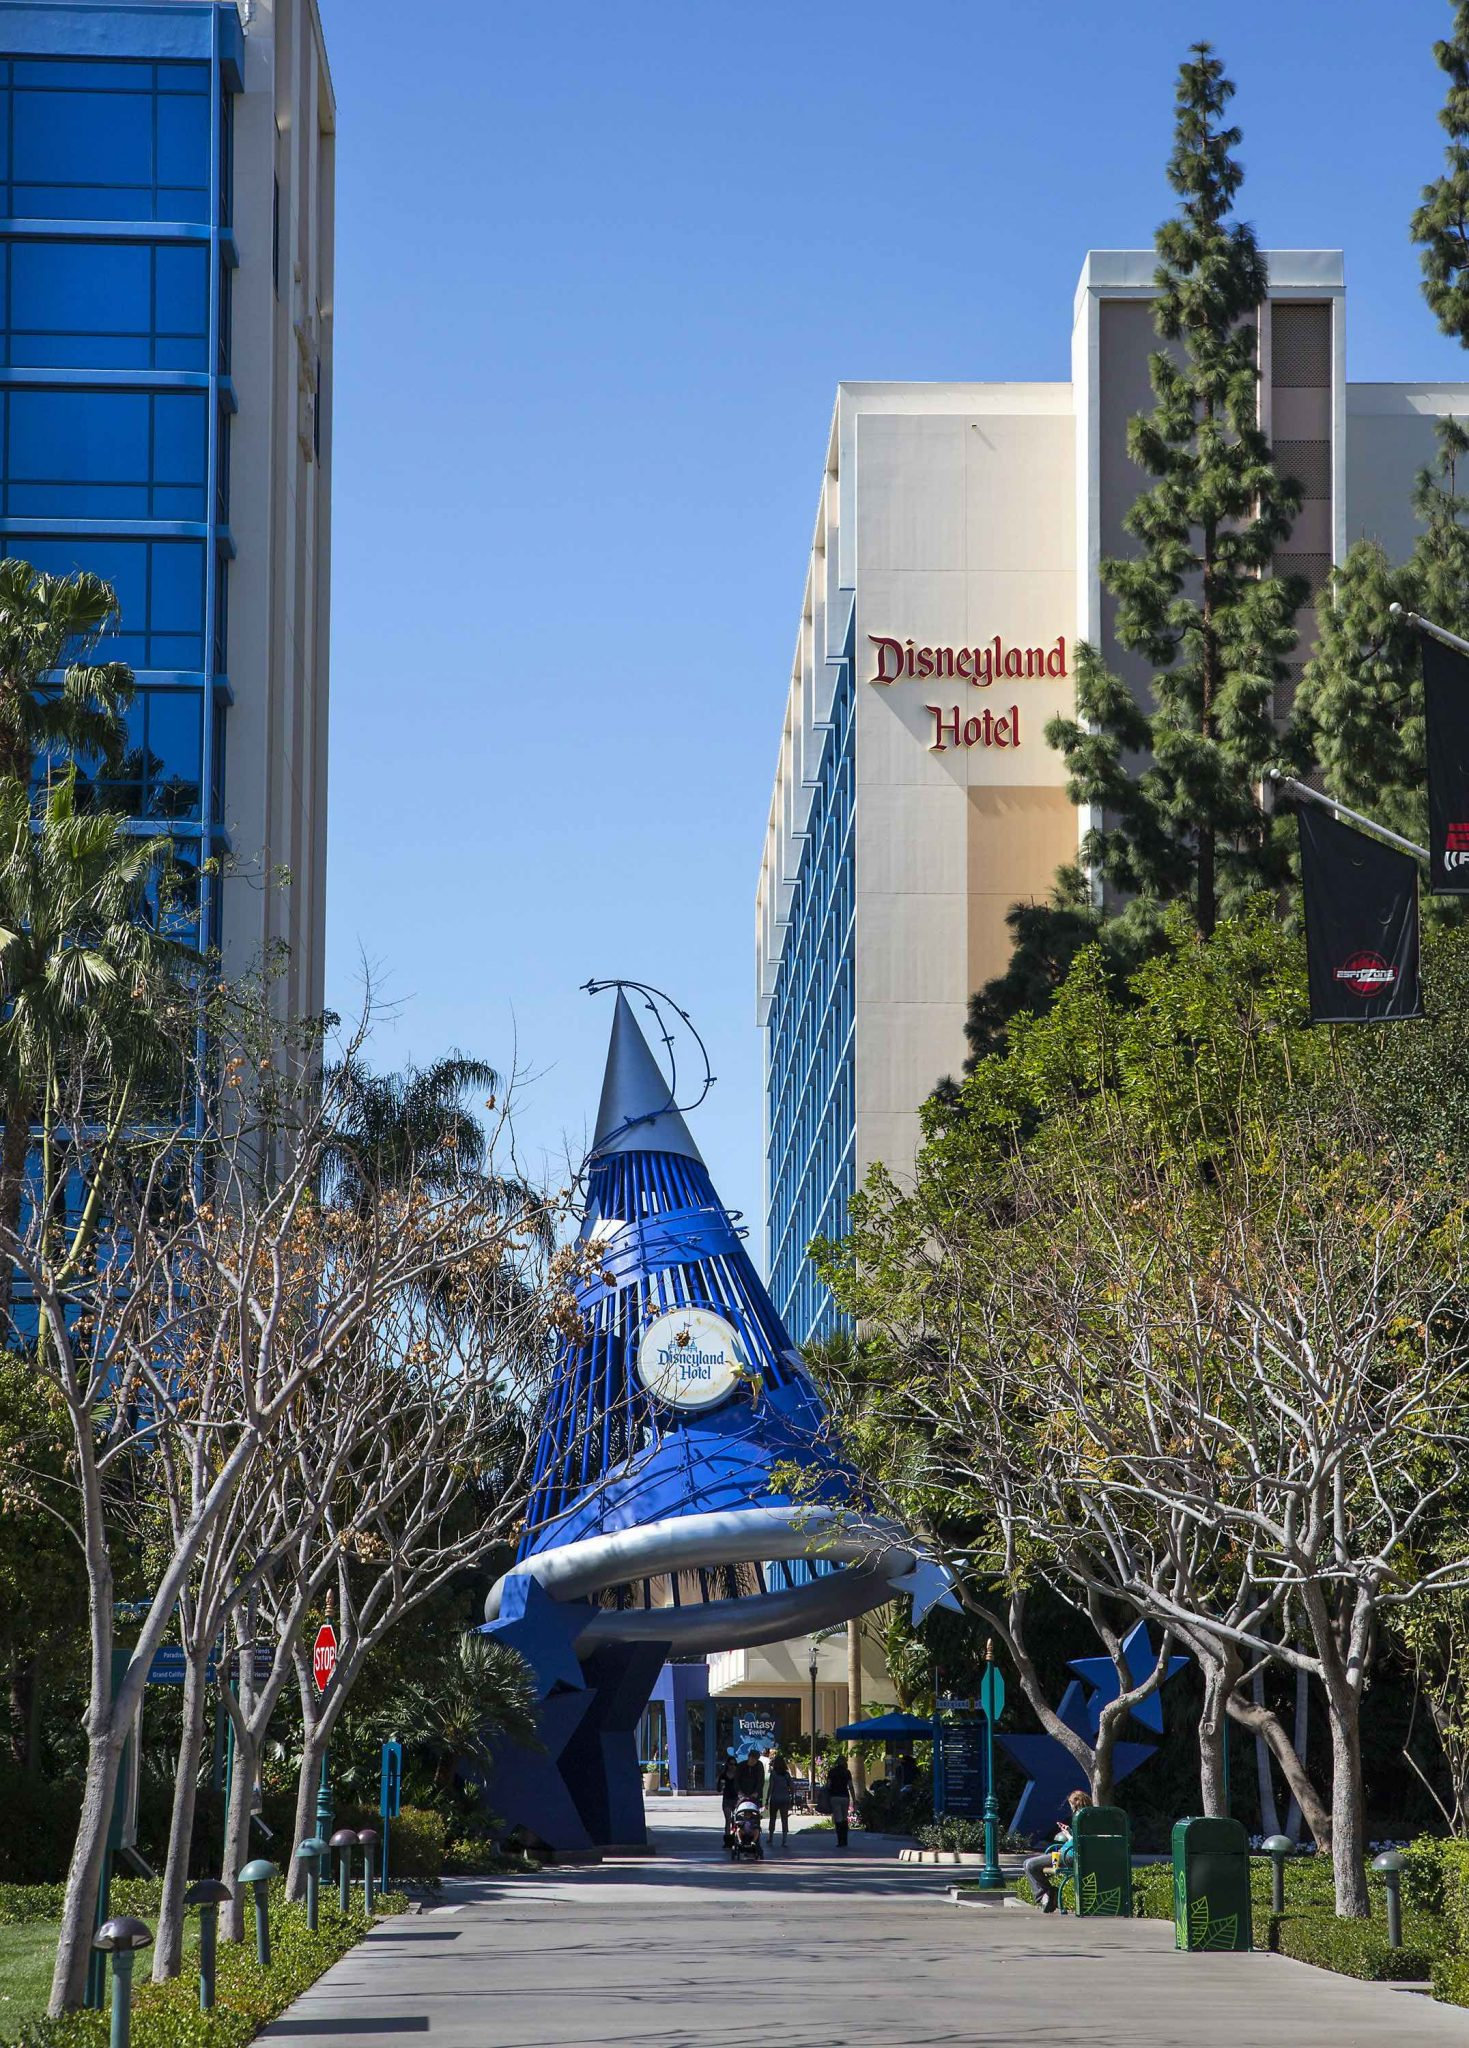 10 Reasons to Stay at the Disneyland Hotel featured by top US Disney blogger, Marcie and the Mouse: DISNEYLAND HOTEL––Follow Tinker Bell's twinkling lights underneath the Sorcerer's Hat to the Disneyland Hotel. Featuring three themed towers, a pool-and-slide water play area, Tangaroa Terrace and Trader Sam's bar, the Disneyland Hotel is one of three Disneyland Resort Hotels conveniently located near Disneyland and Disney California Adventure parks and the Downtown Disney District. (Paul Hiffmeyer/Disneyland Resort)